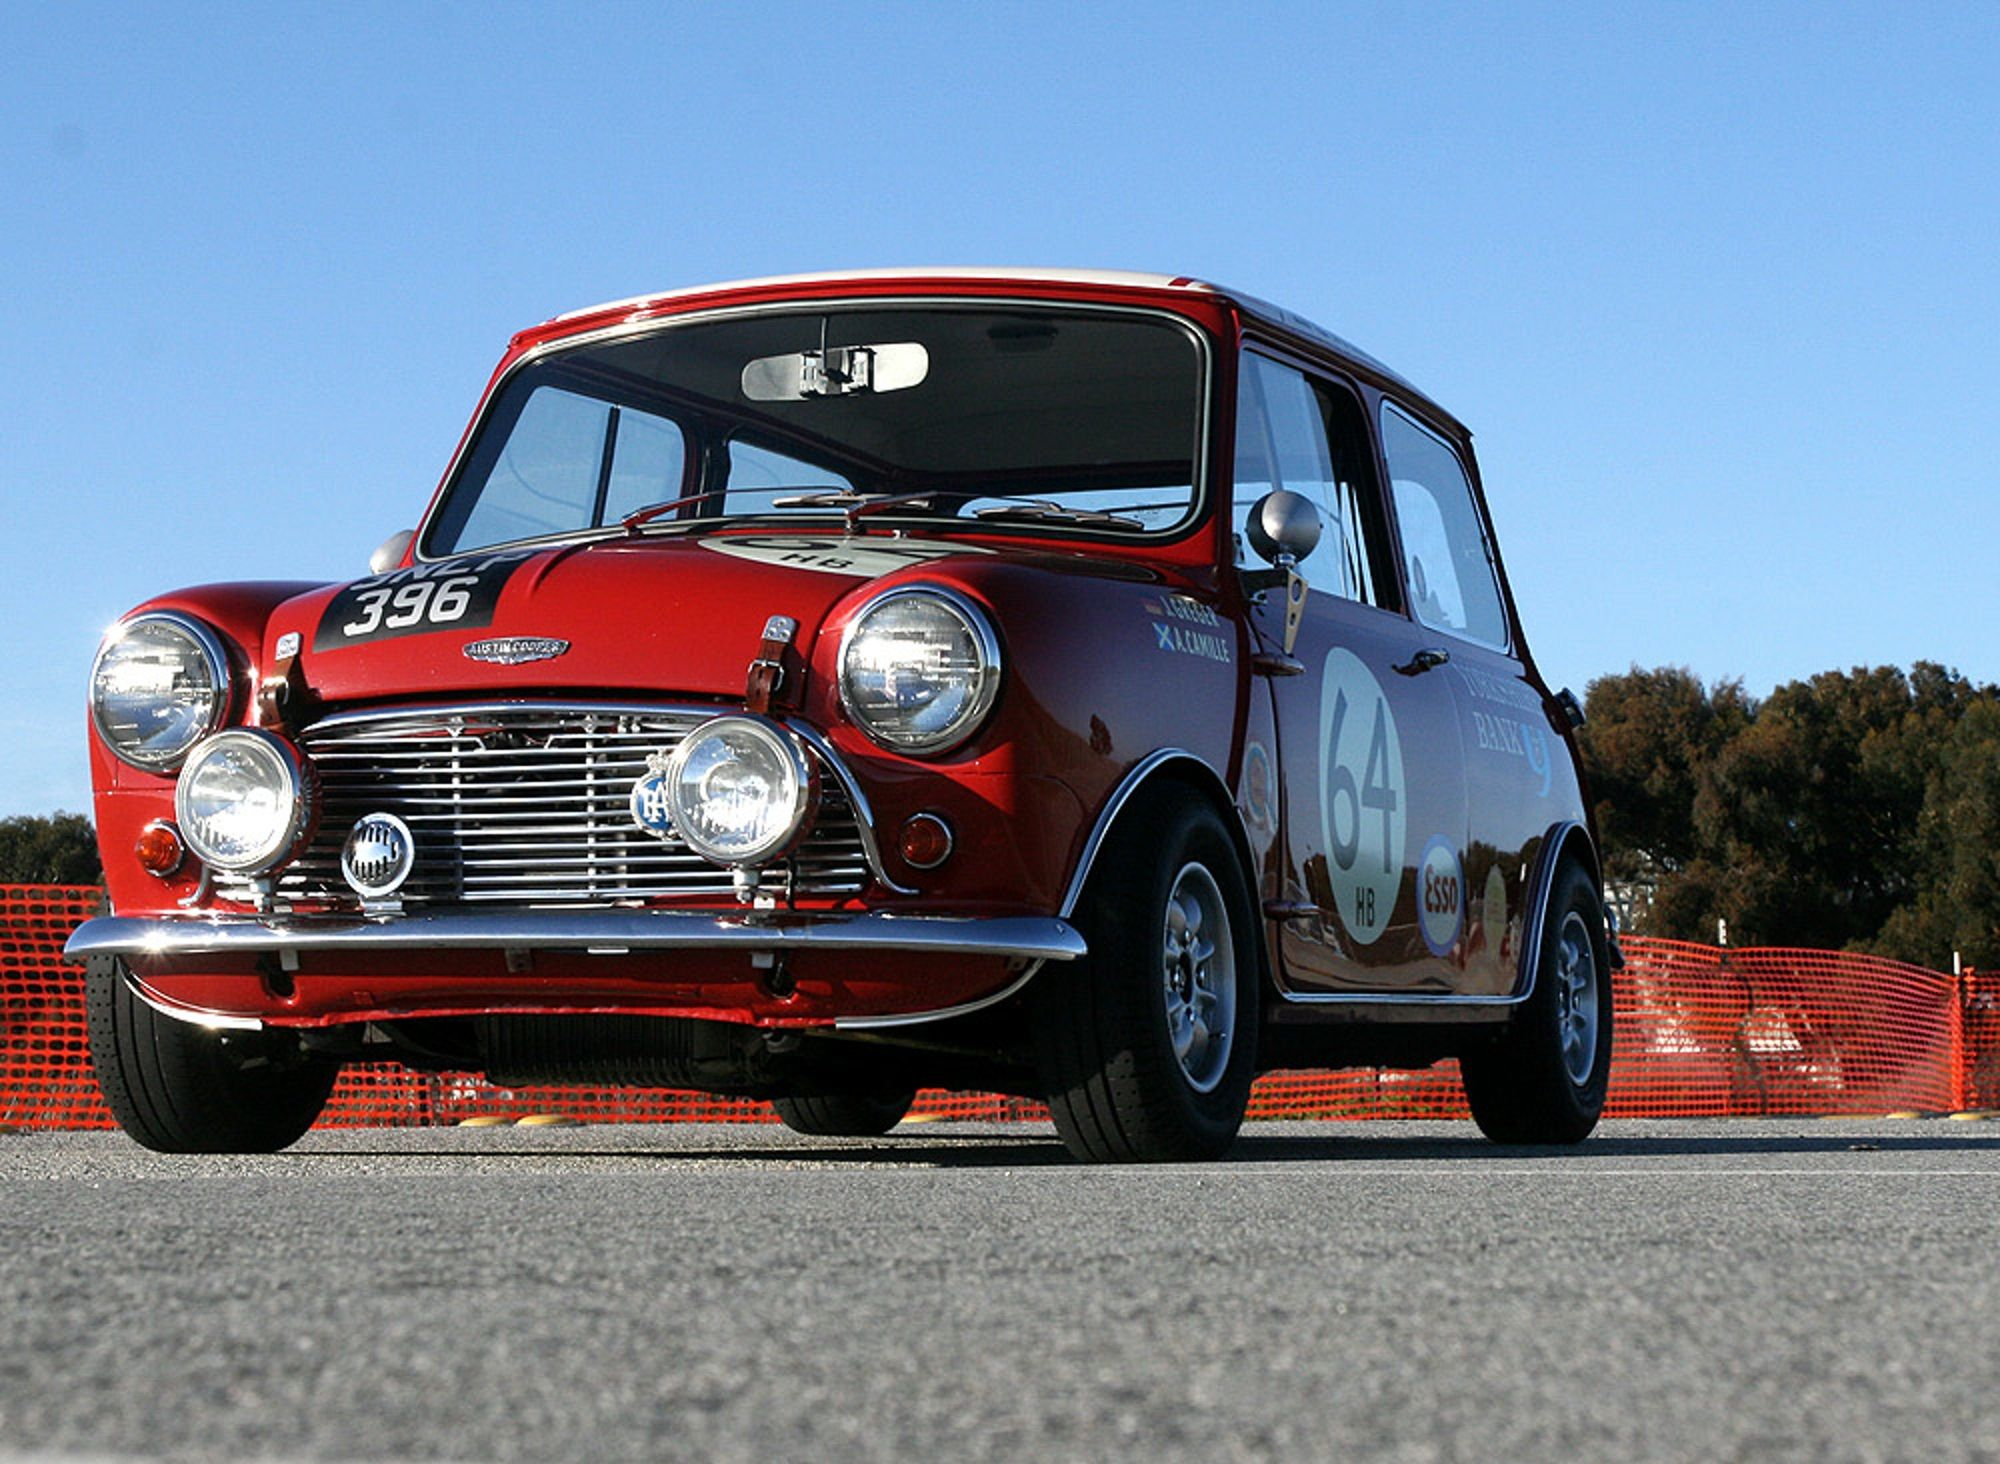 Austin Mini Rally Car Finds New Life as Daily Driver | Rally car ...